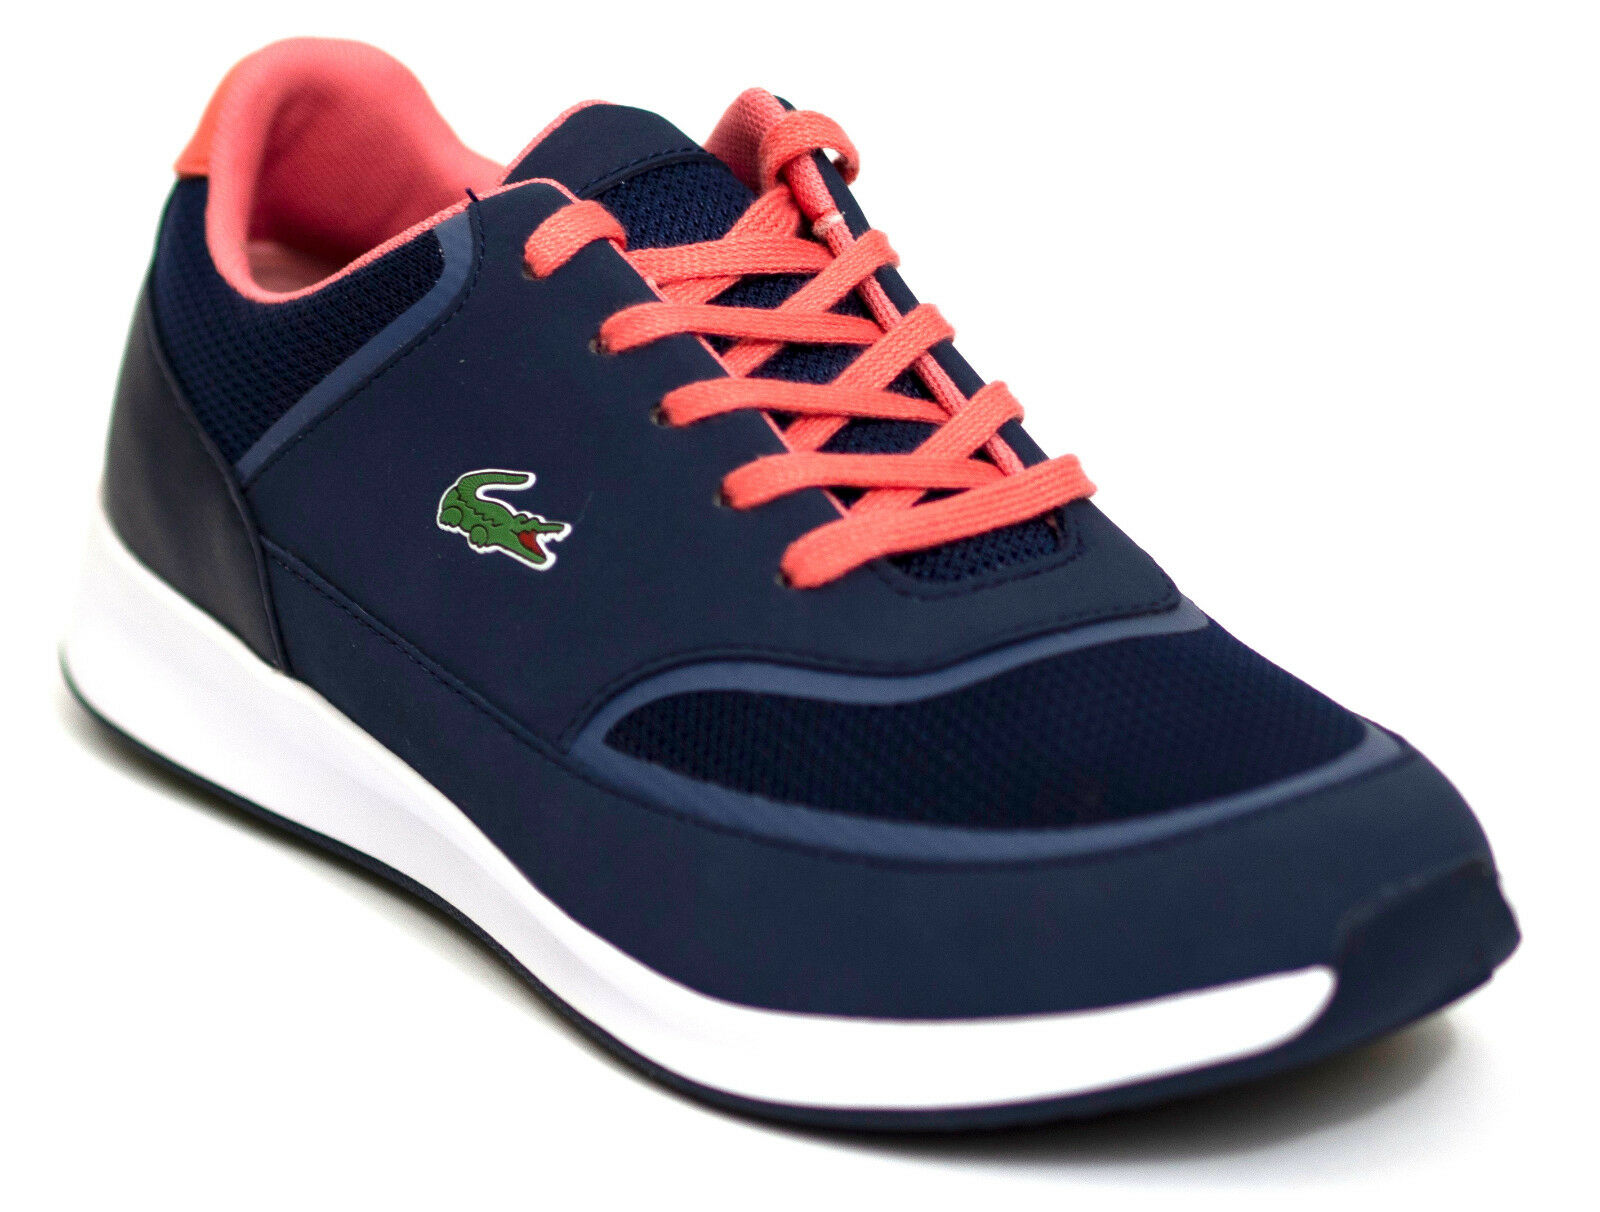 Lacoste Chaumont Lace 316 2 SPW Musthave baskets bleu bleu rose 38 Ortholite NEU